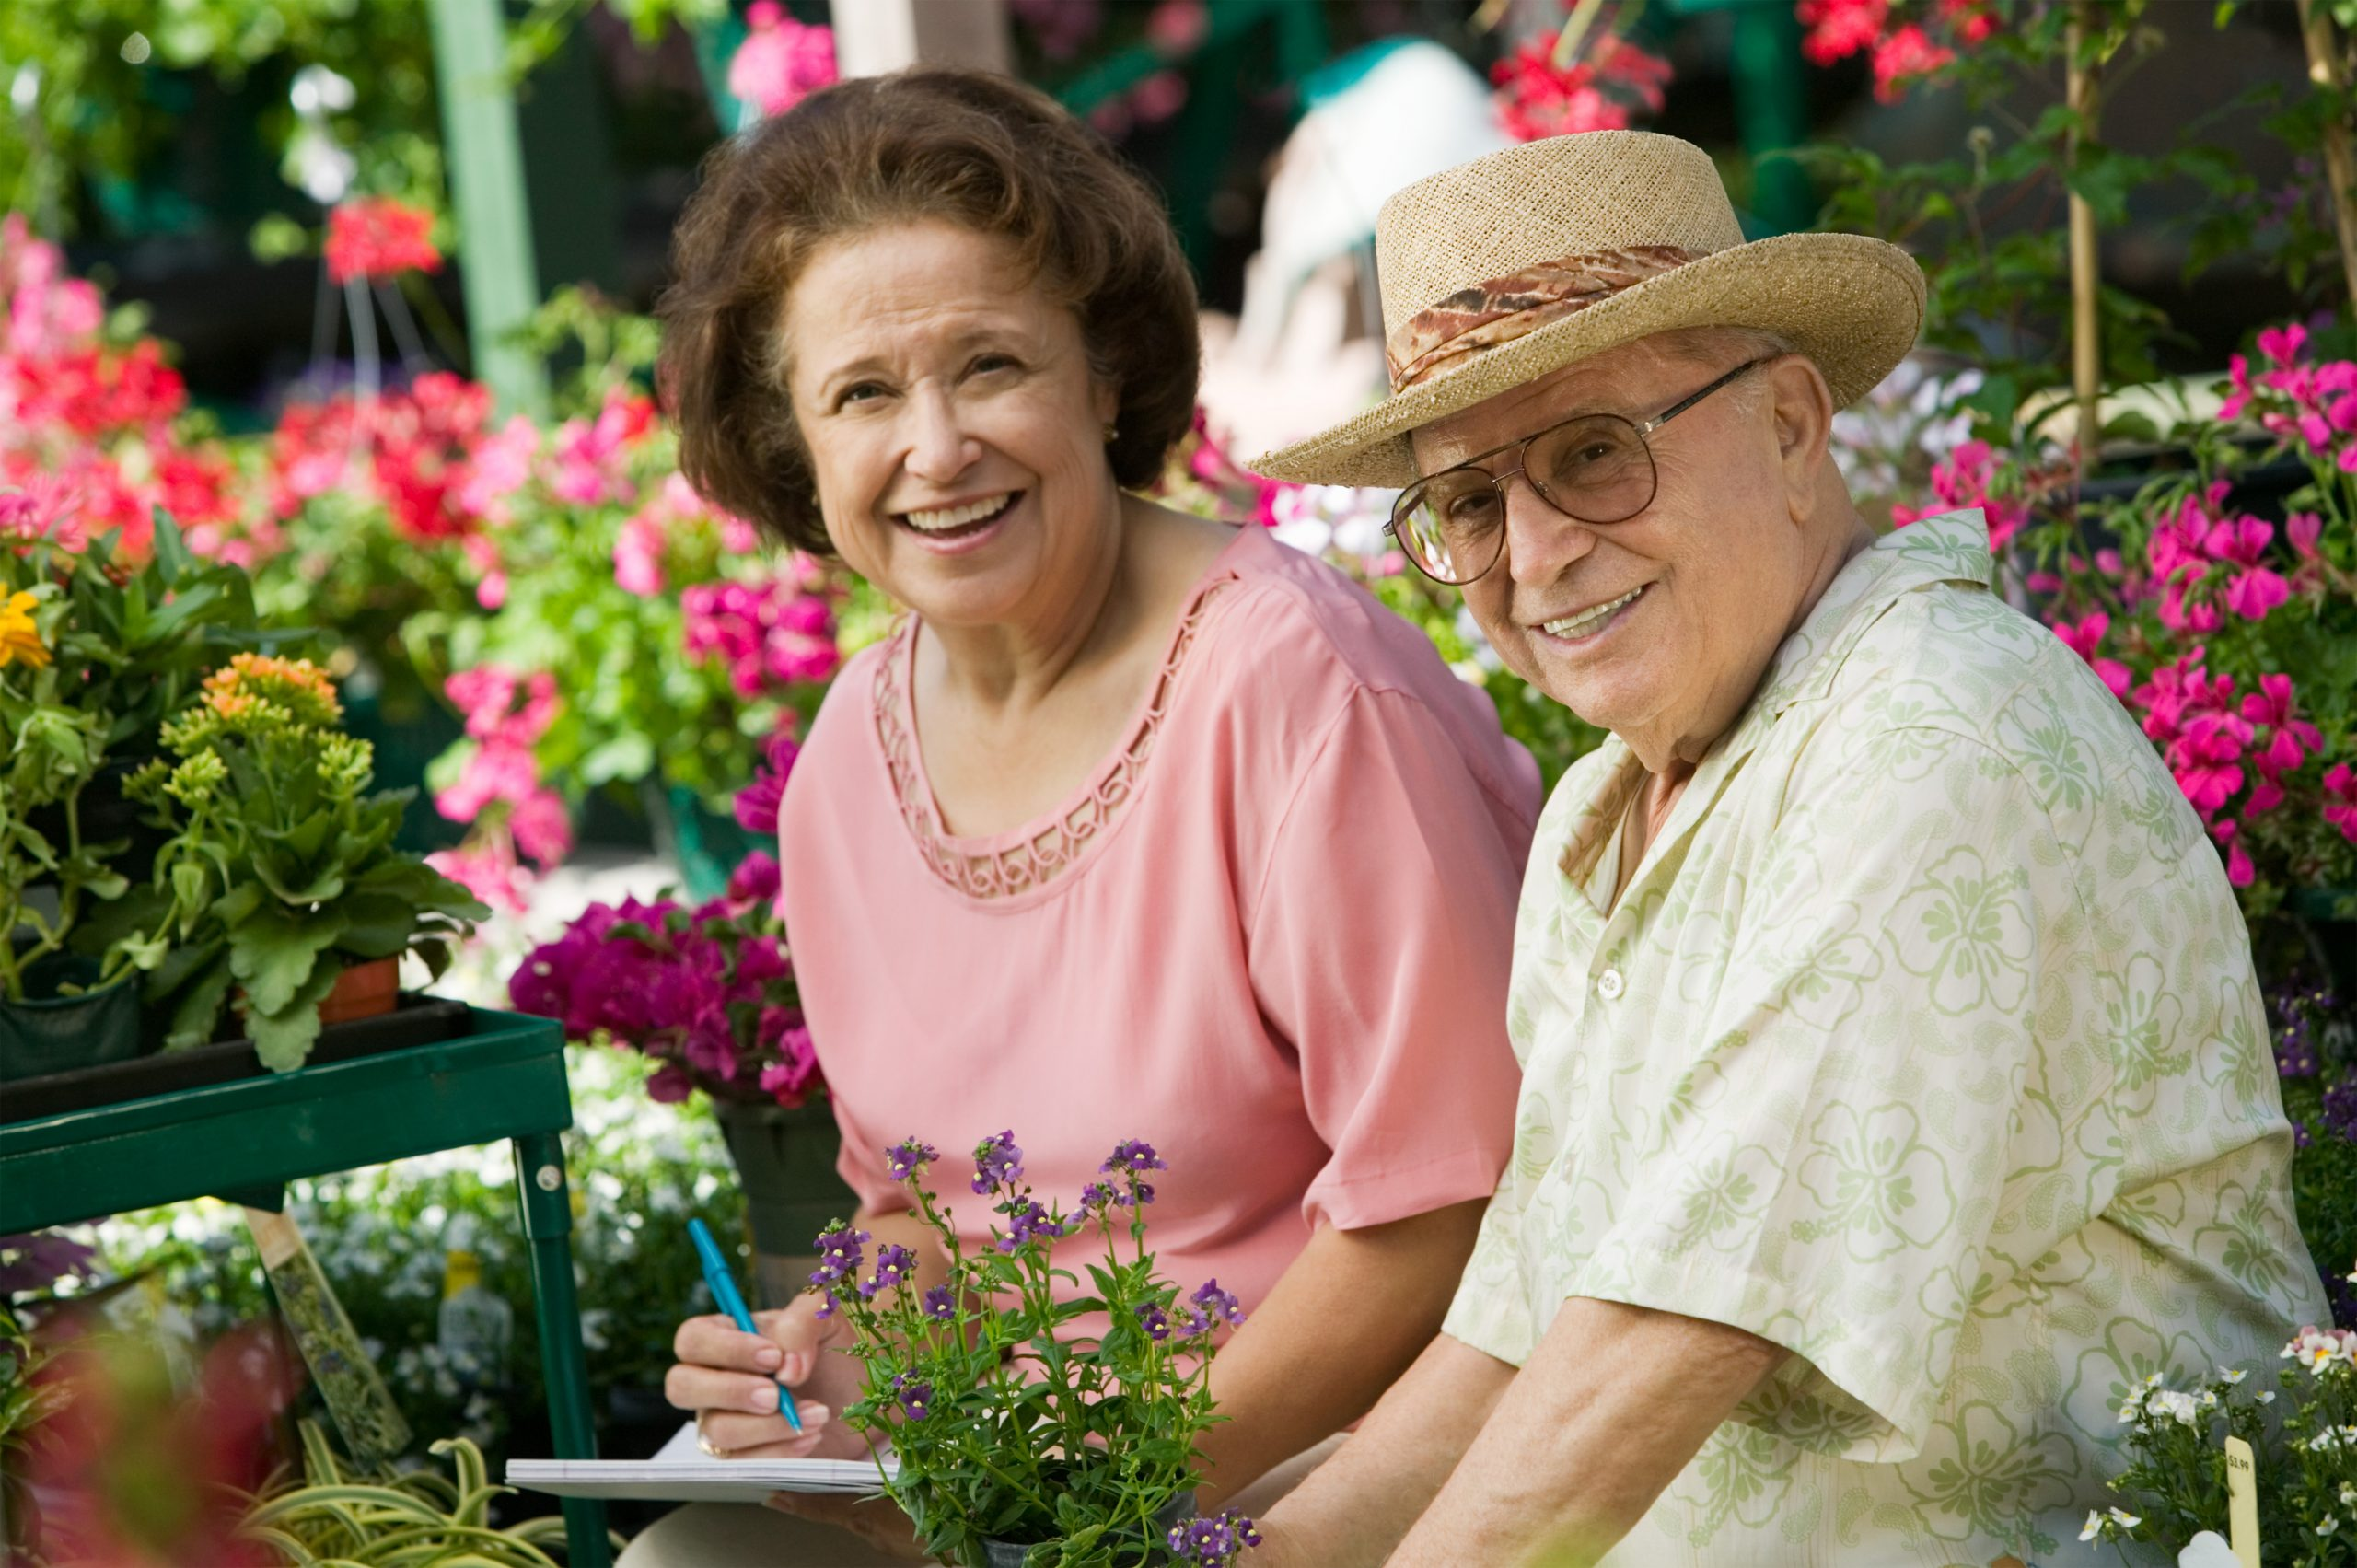 Seniors are Discovering New Ways to Improve Their Retirement